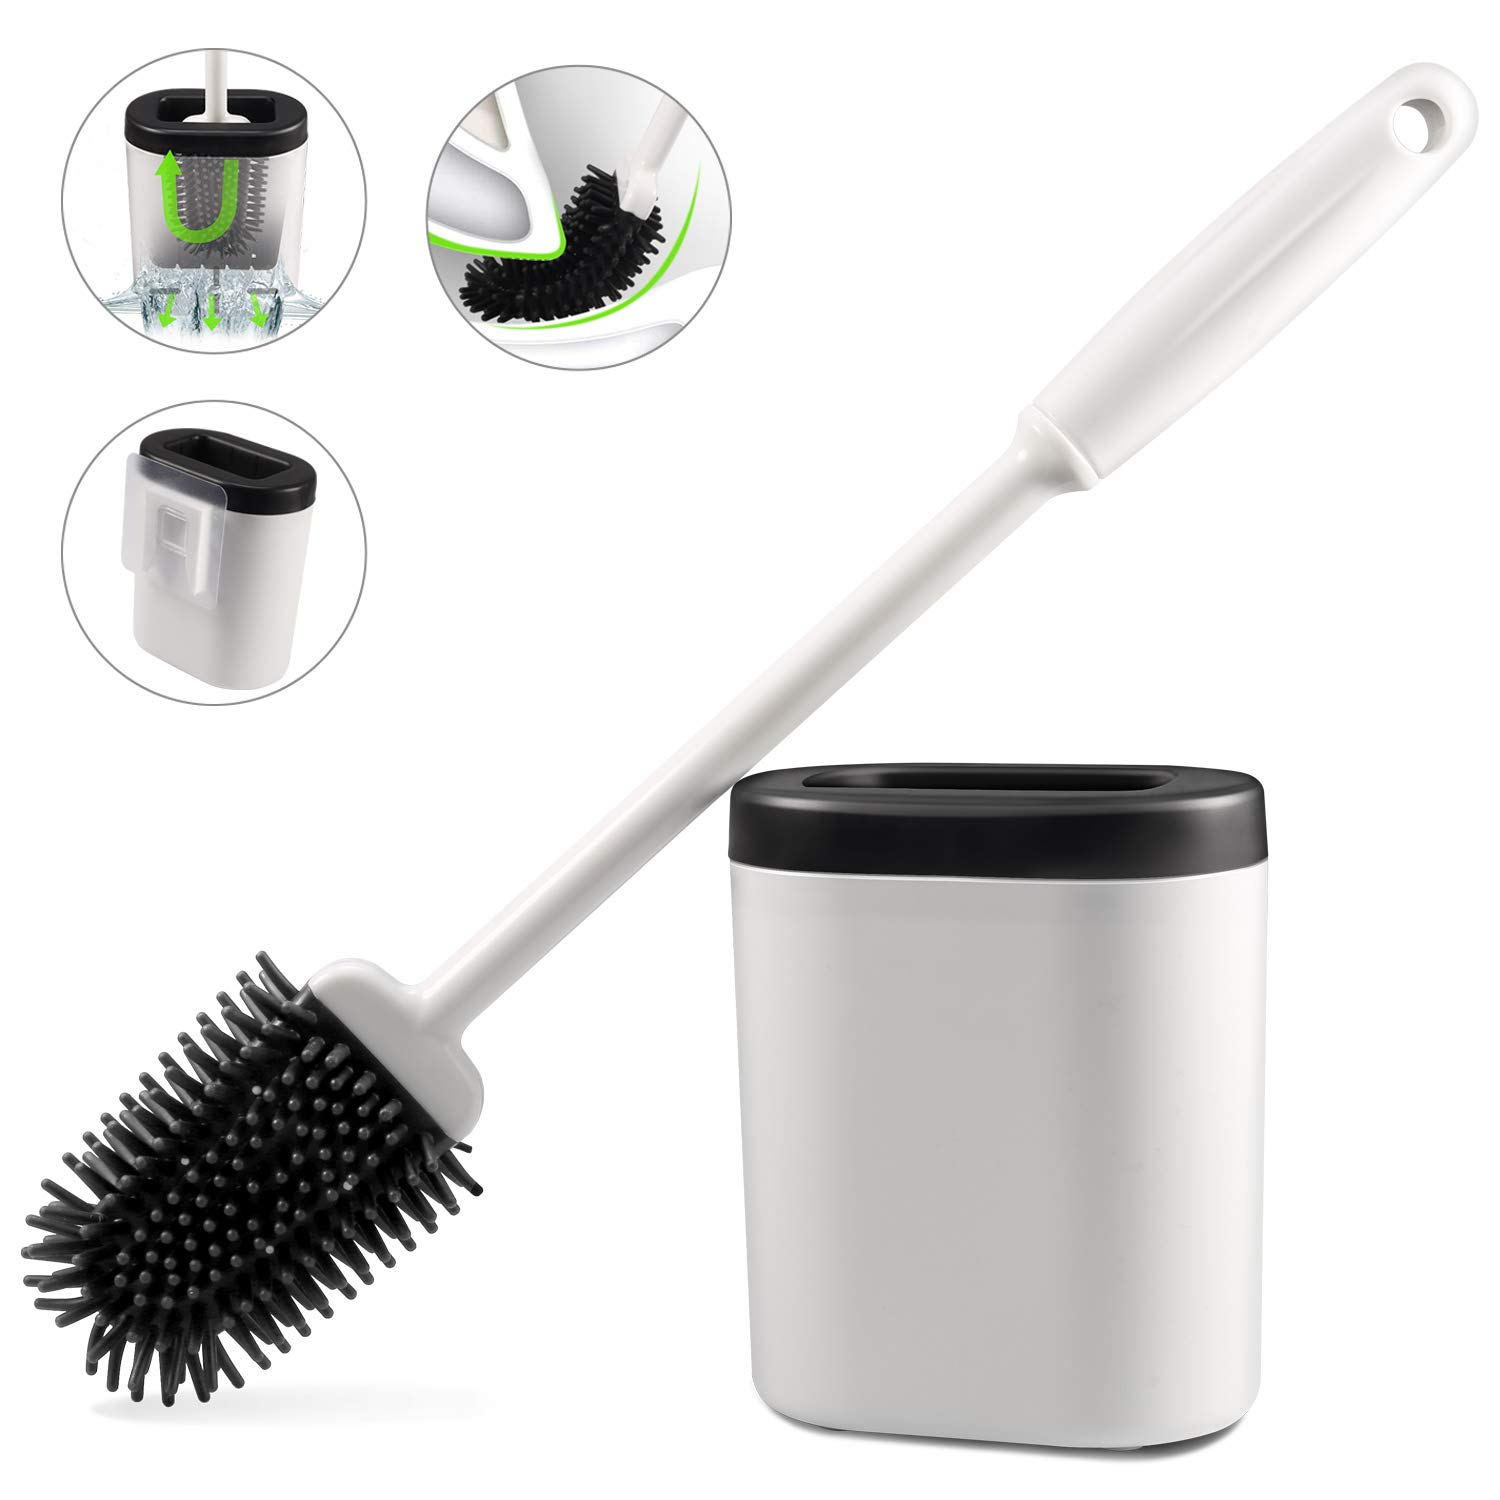 Foonii Toilet Brush and Holder Set, Silicone Bristles Toilet Bowl Cleaner Brush Kit with Holder for Bathroom Storage and Organization, Carrying Solid Anti-Rust Handle Design